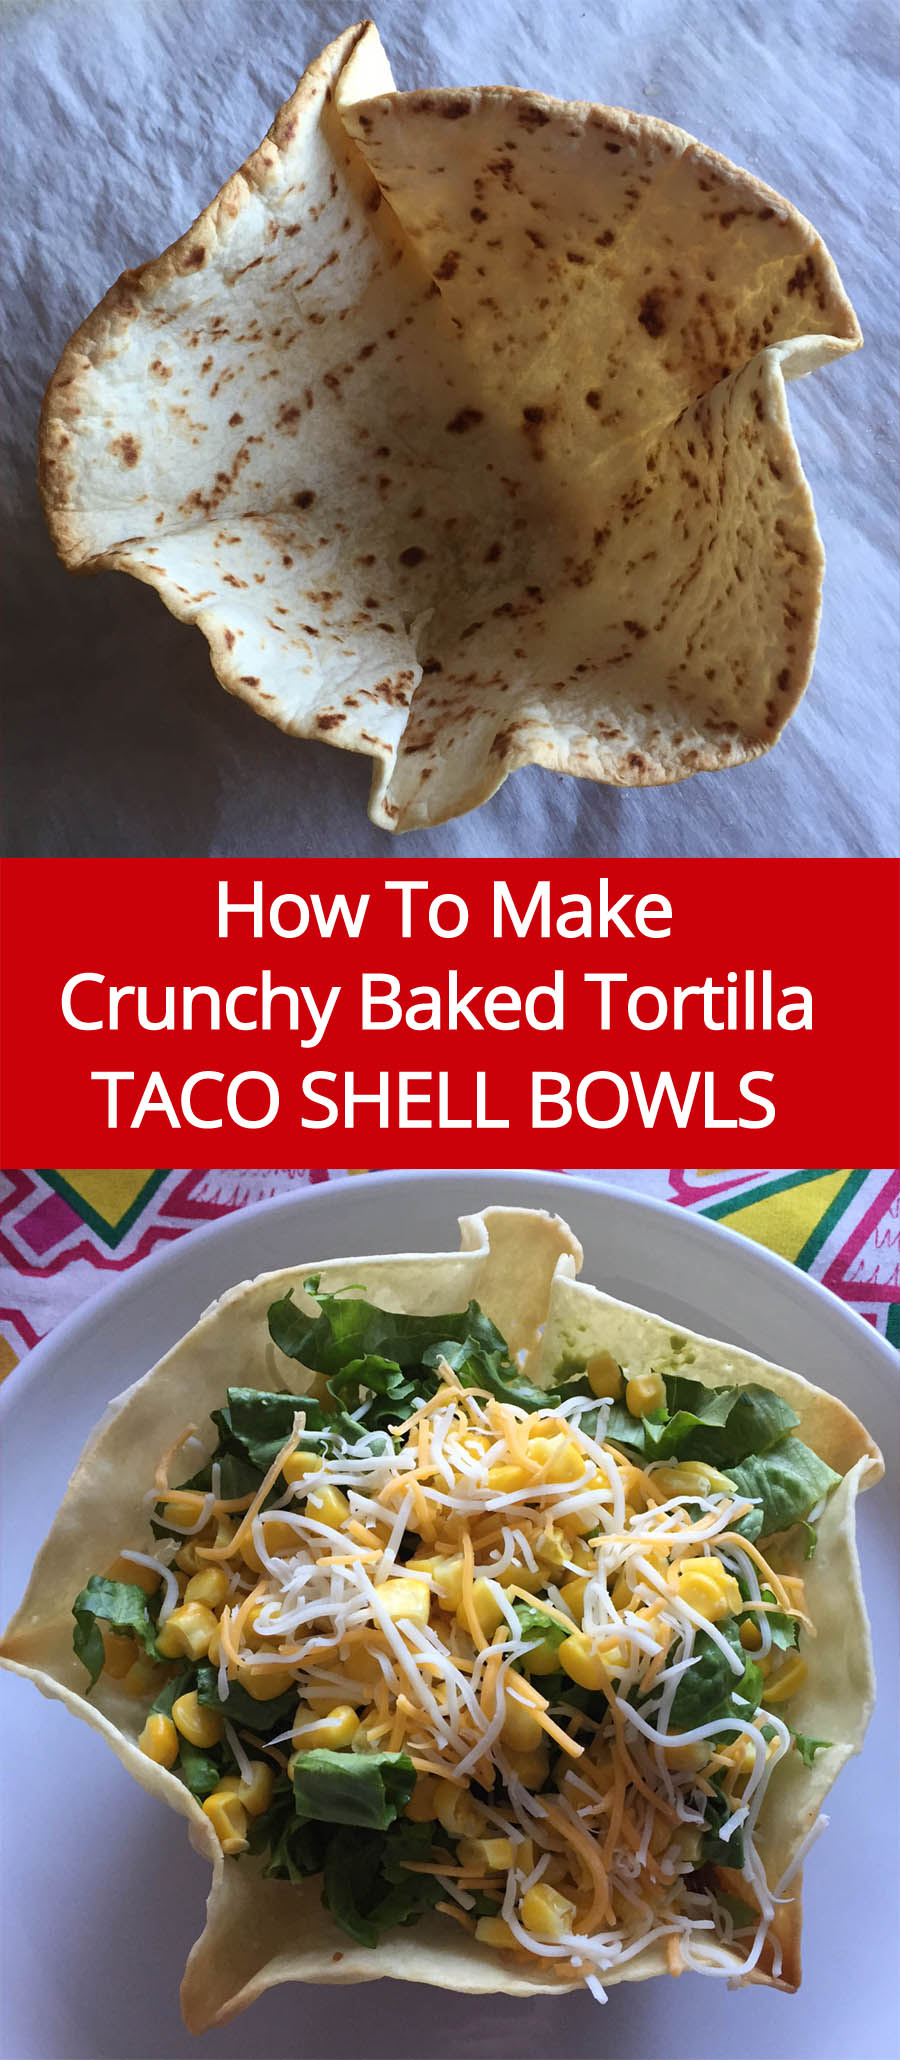 These homemade tortilla taco shell bowls will take your taco salad to the whole new level! So crunchy and yummy! Great for a taco bar too!